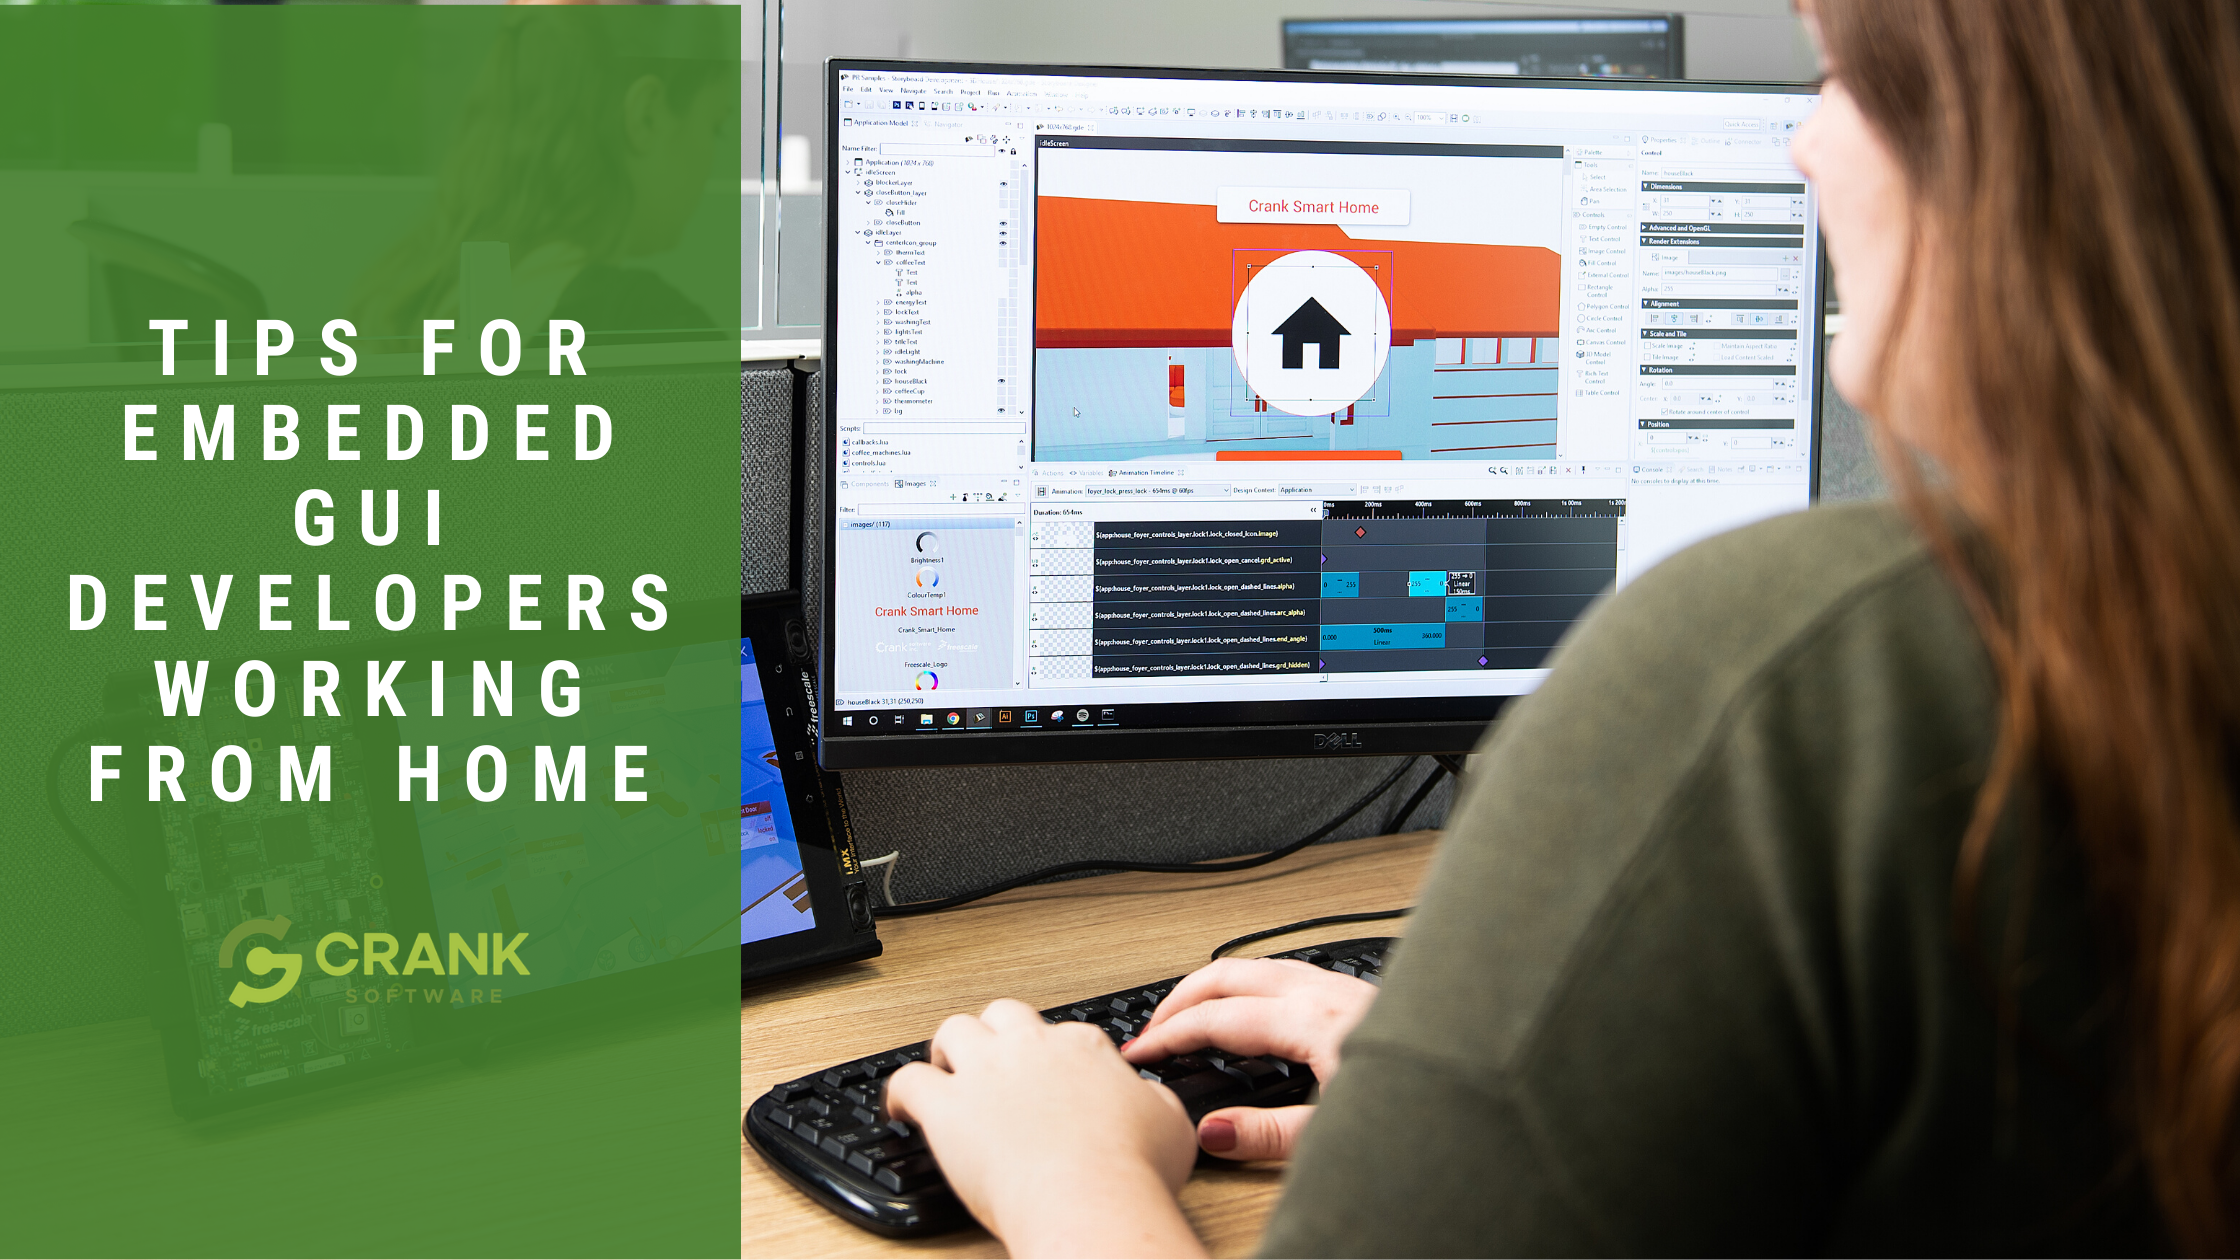 Tips for embedded GUI developers working from home with Storyboard